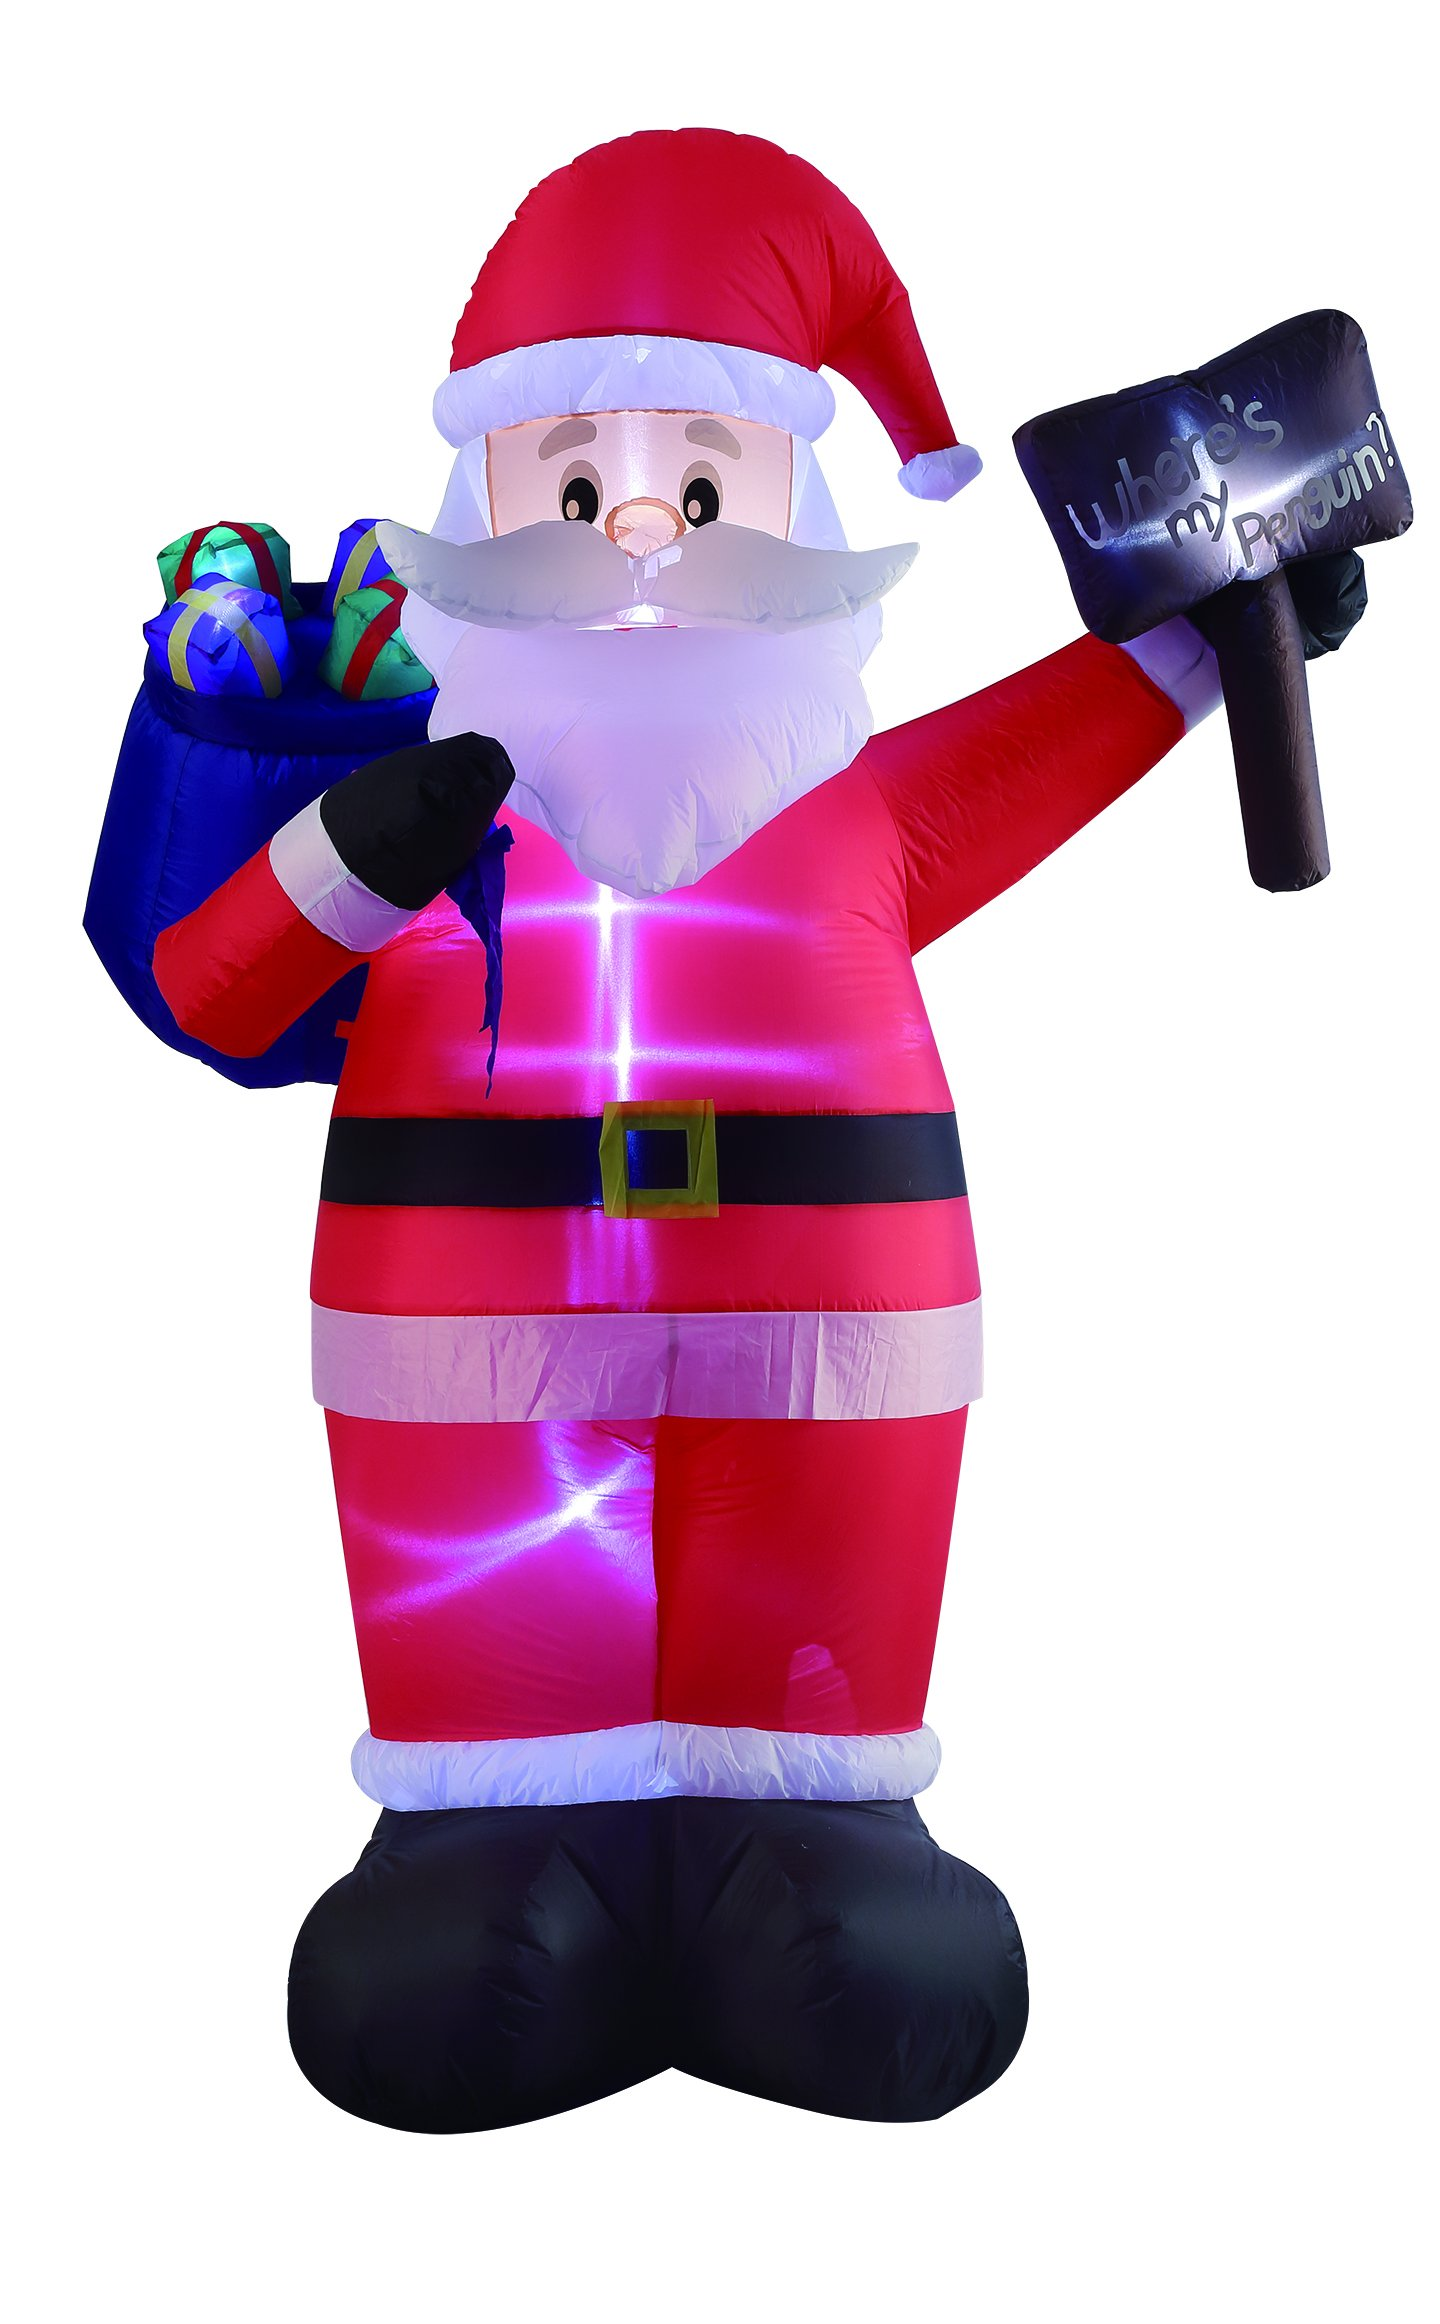 VIDAMORE 8FT Tall Christmas Inflatable Santa with Gift Bag and Sign Lawn Yard Garden outdoor decoration